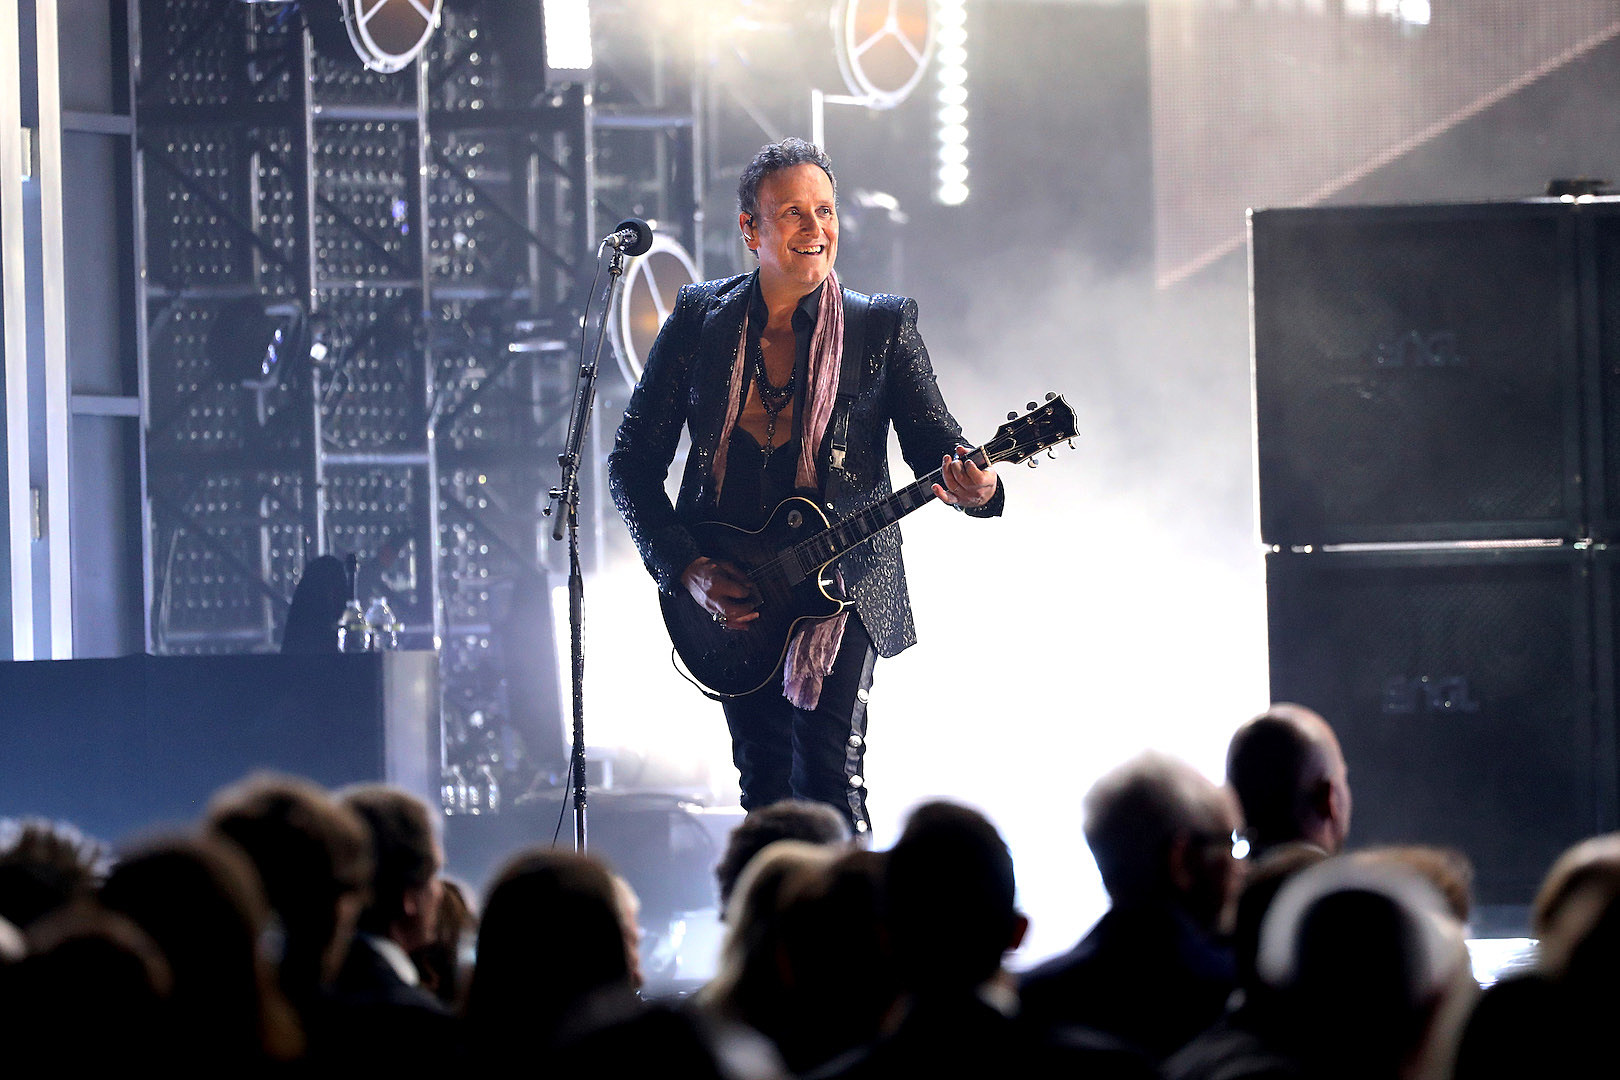 Def Leppard: Record Label Didn't Want 'Pour Some Sugar on Me'